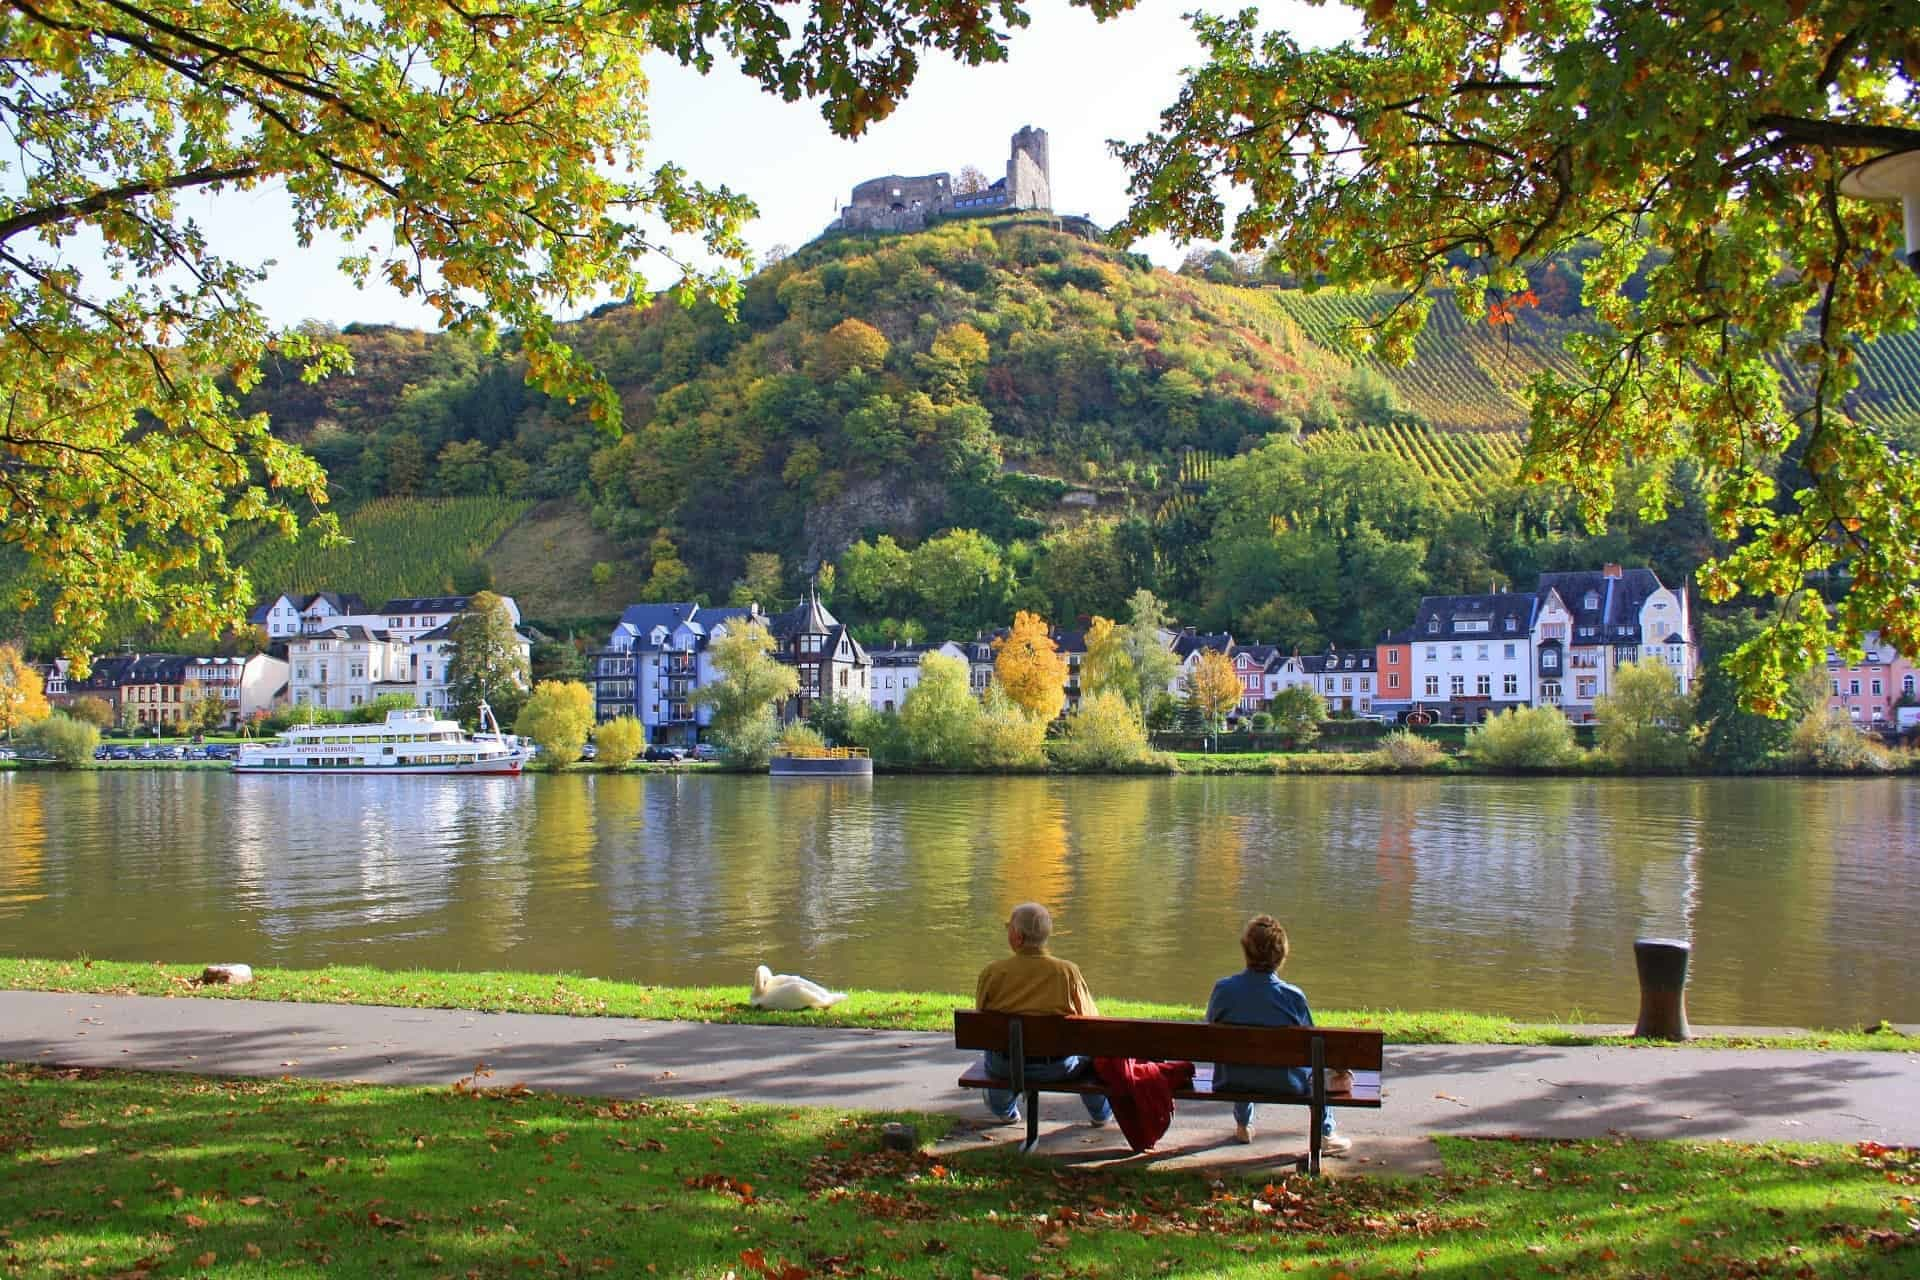 The Moselle River, which runs through Trier, Germany's oldest city.